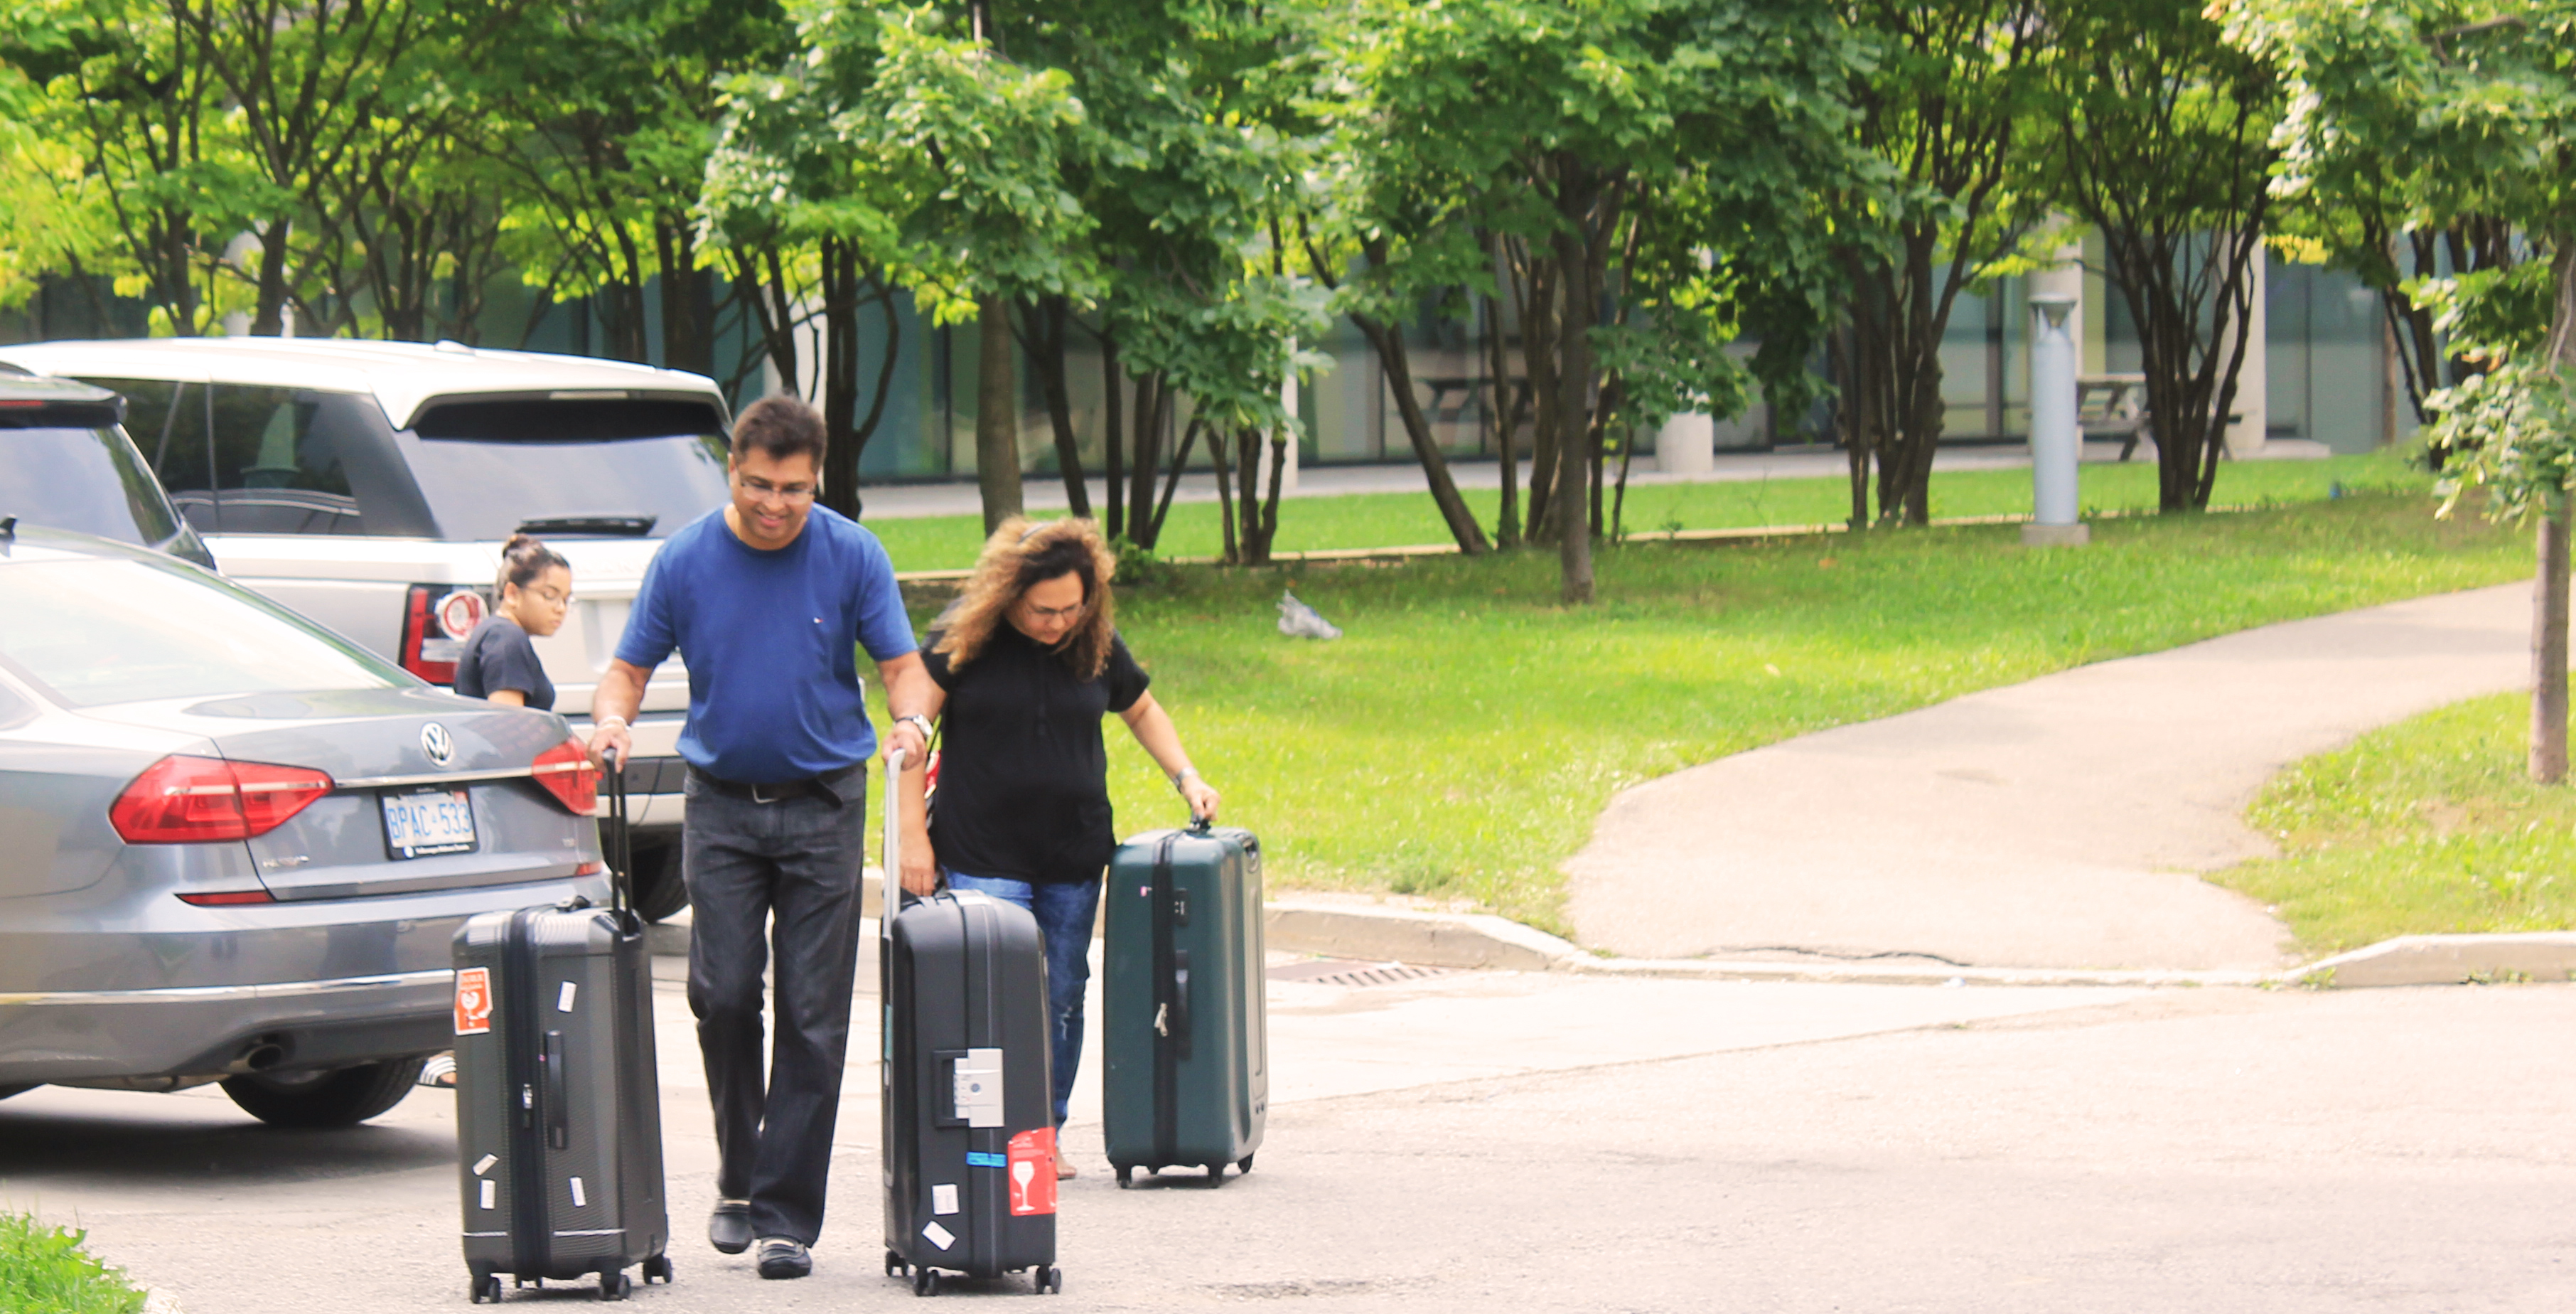 parents carrying out luggage